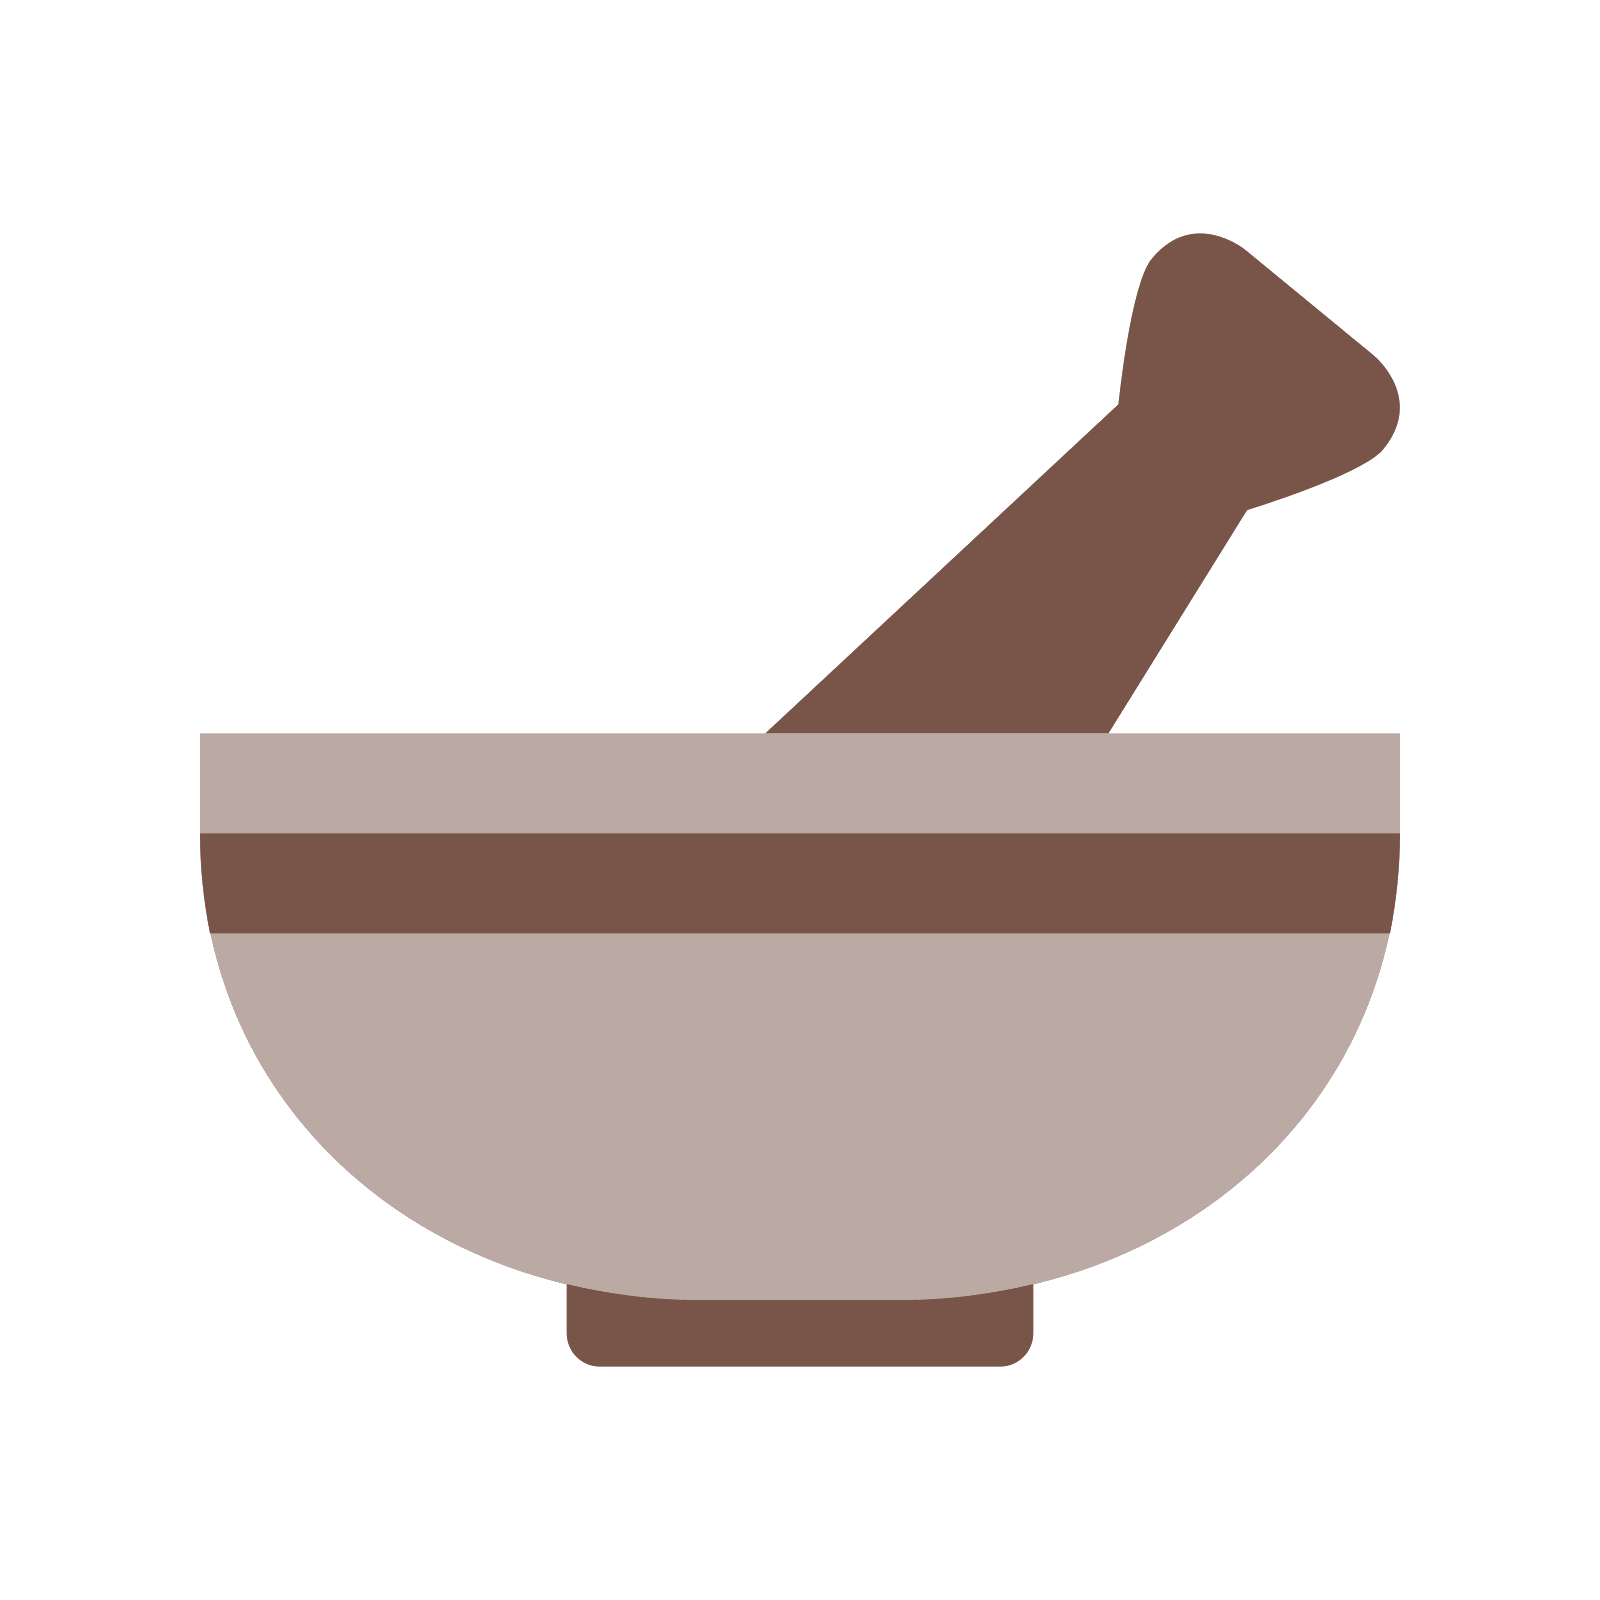 clipart black and white stock Icon kostenloser download png. Mortar and pestle clipart ayurveda symbol.